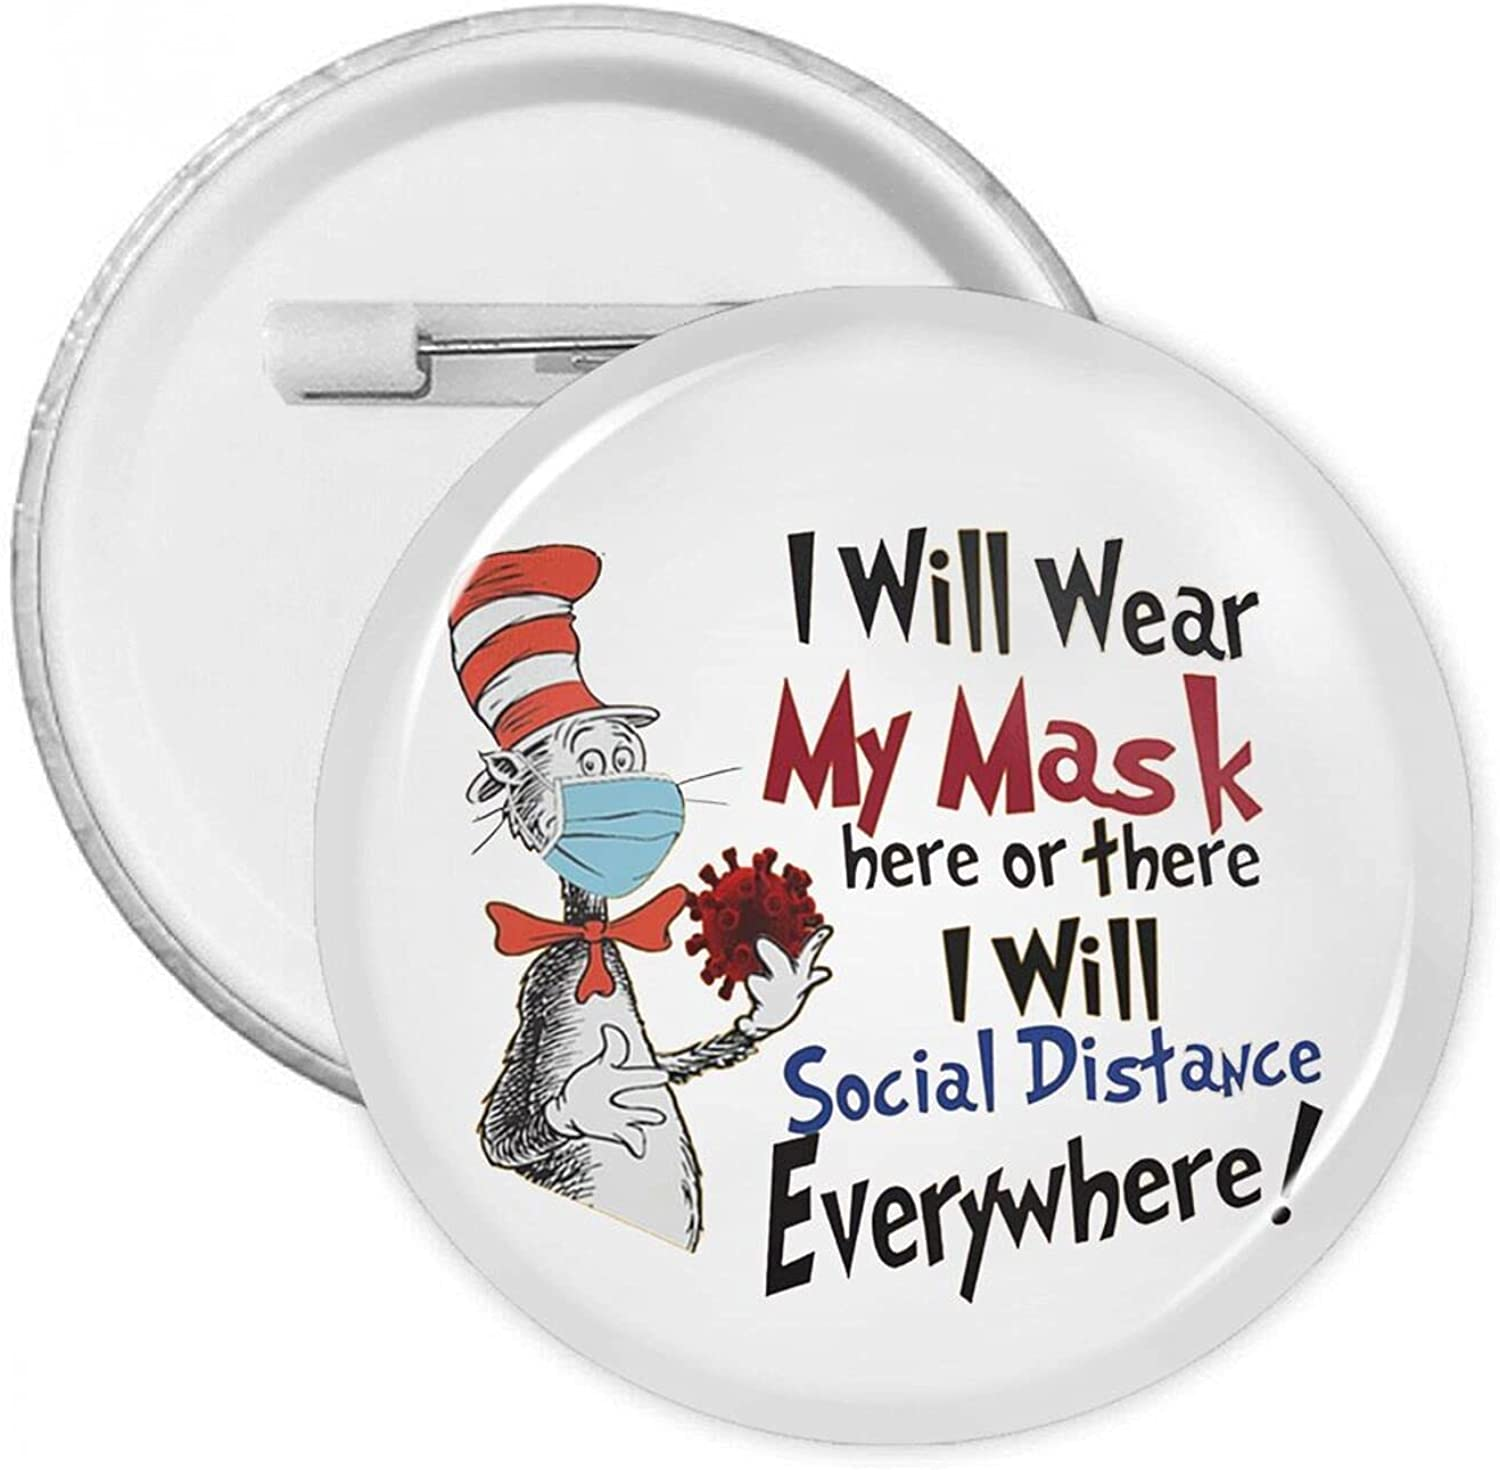 I ï¼·ill Wear safety My Mask Here With Or Button Badges There Round Some reservation